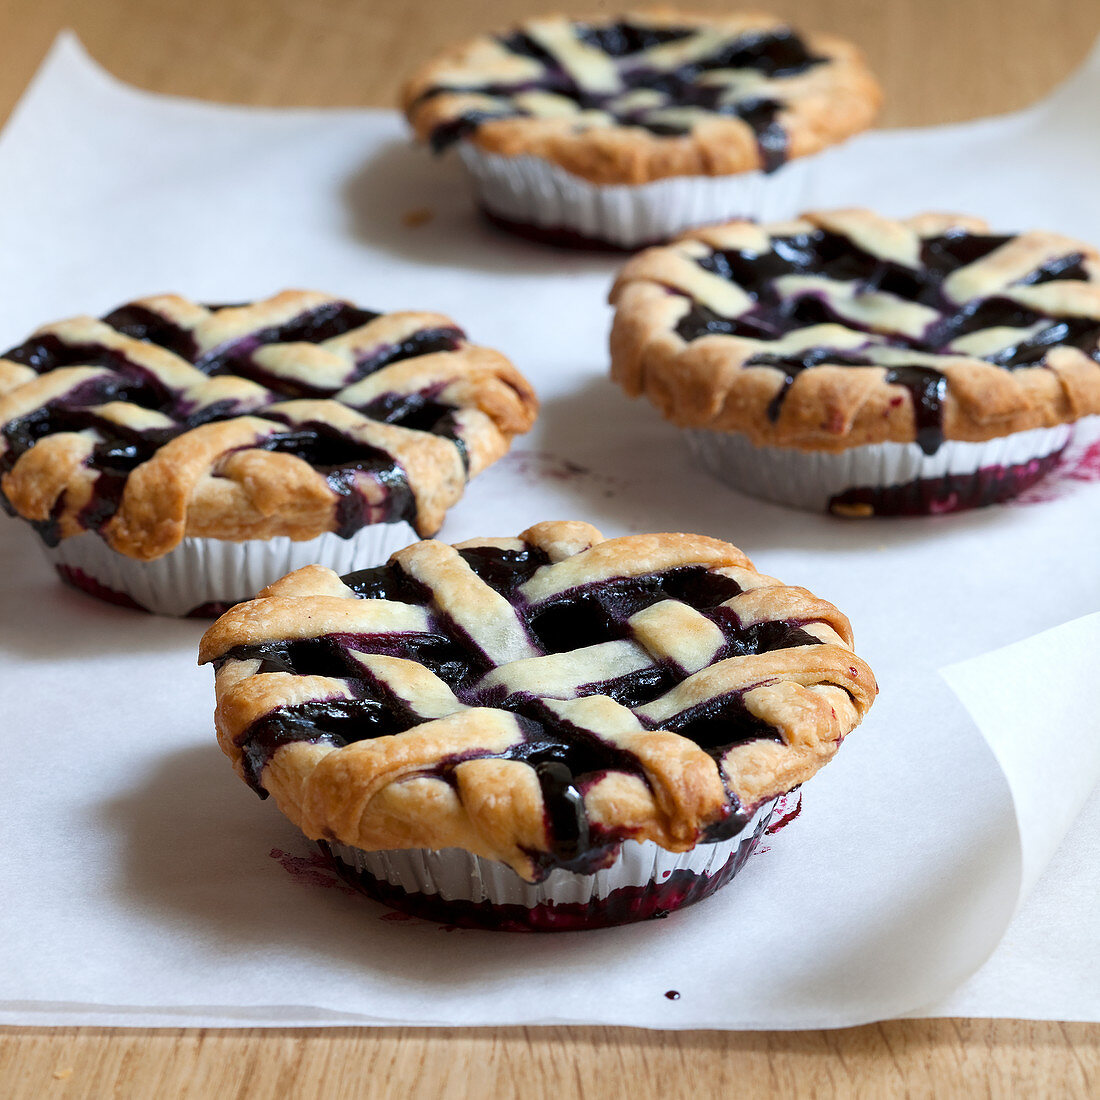 Cutie Pies with Blueberries and Cherries (USA)